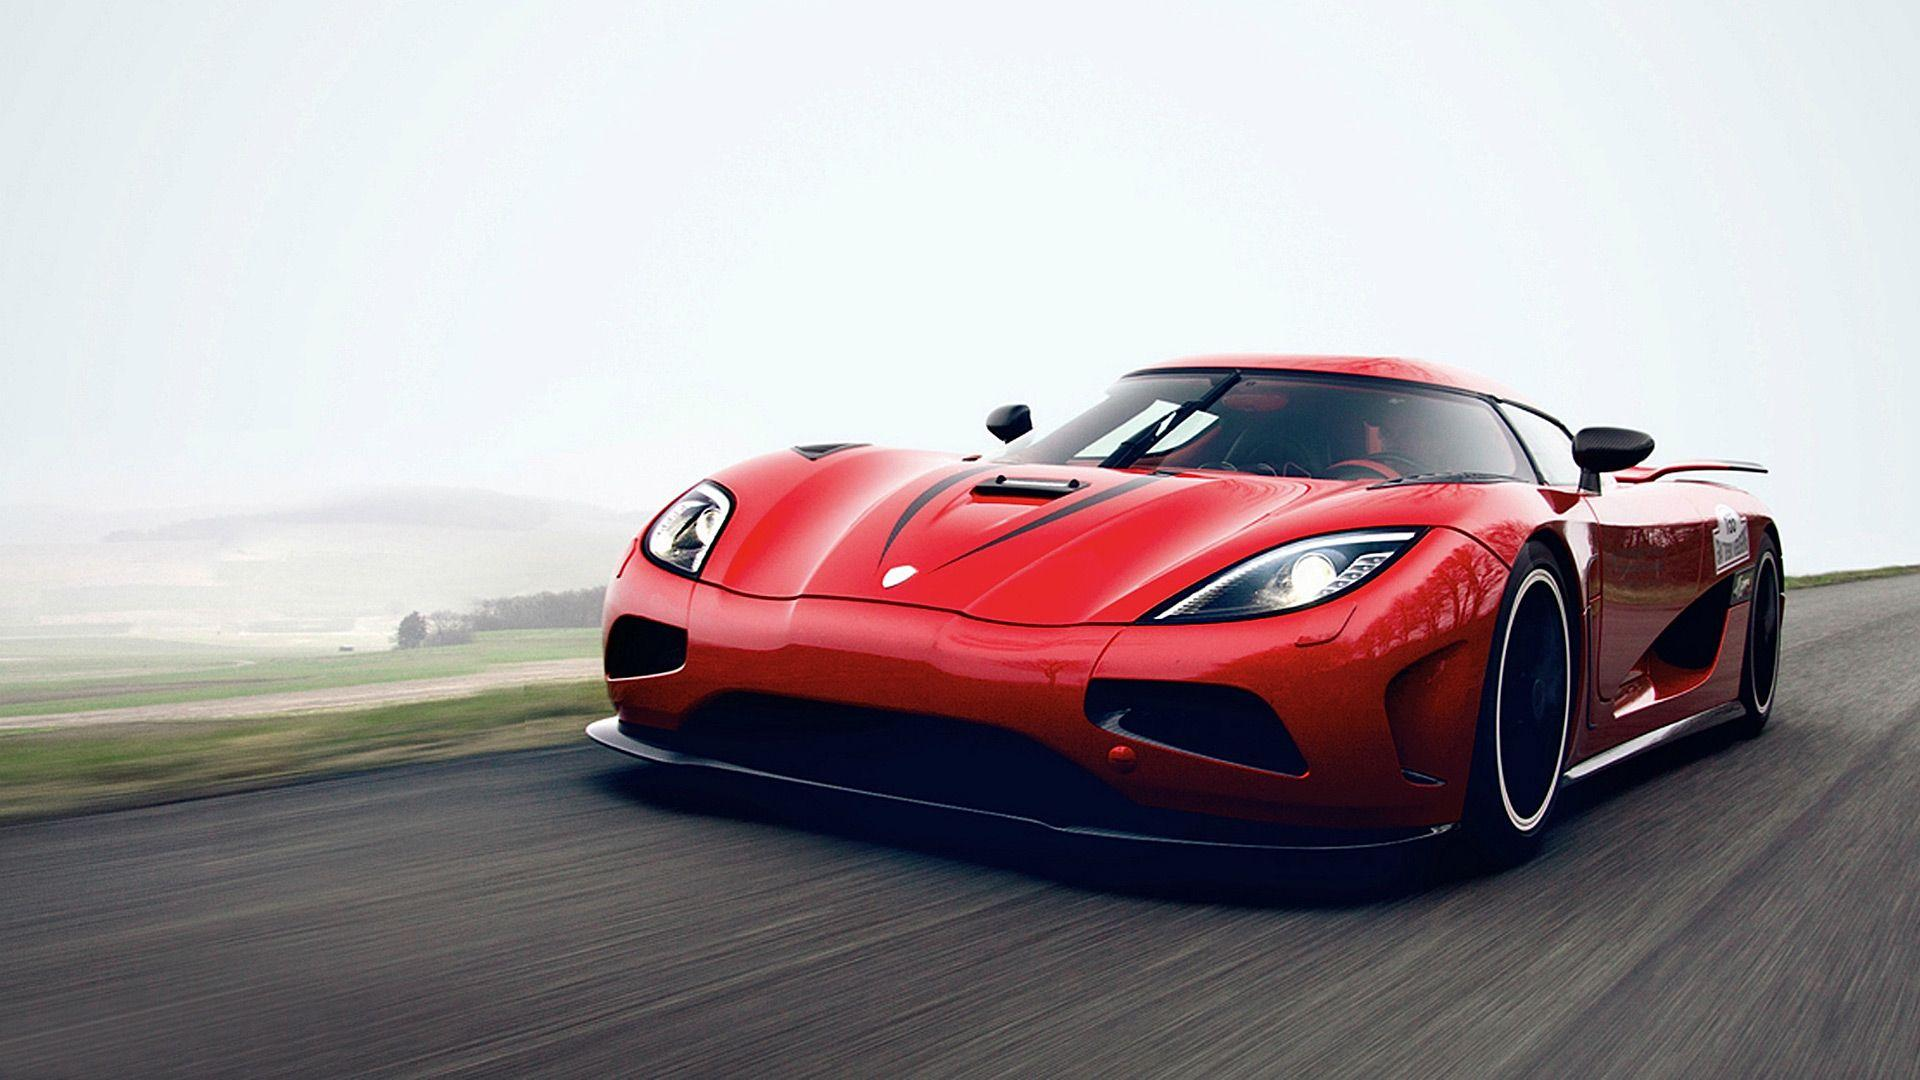 2011 Koenigsegg Agera R Wallpapers & HD Image